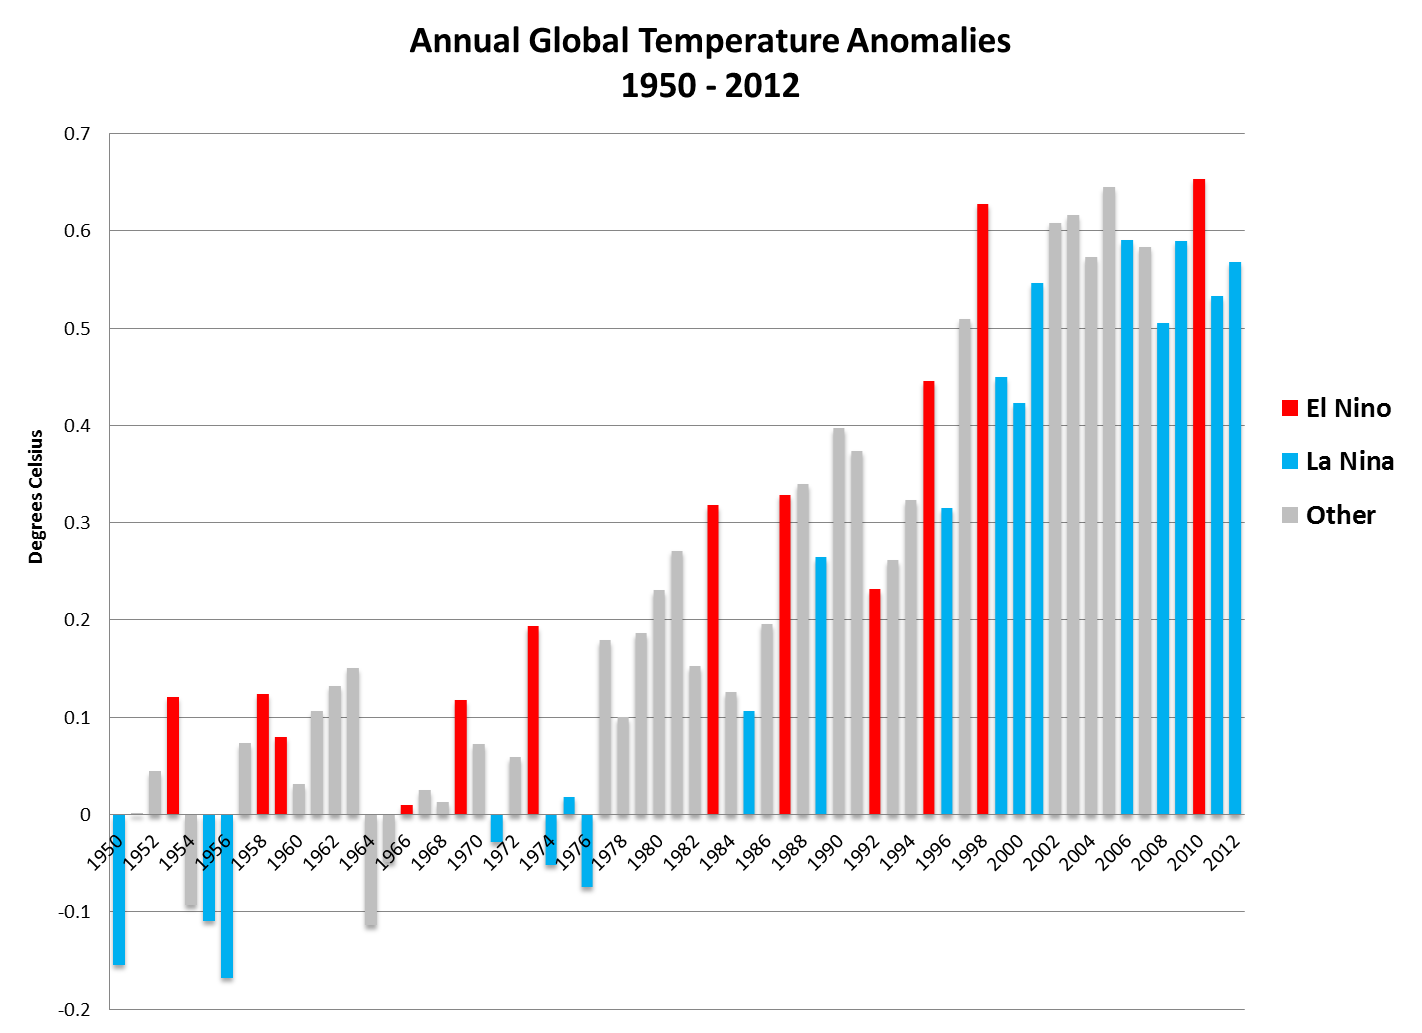 Temperature anomalies color coded to show El Niño and La Niña years